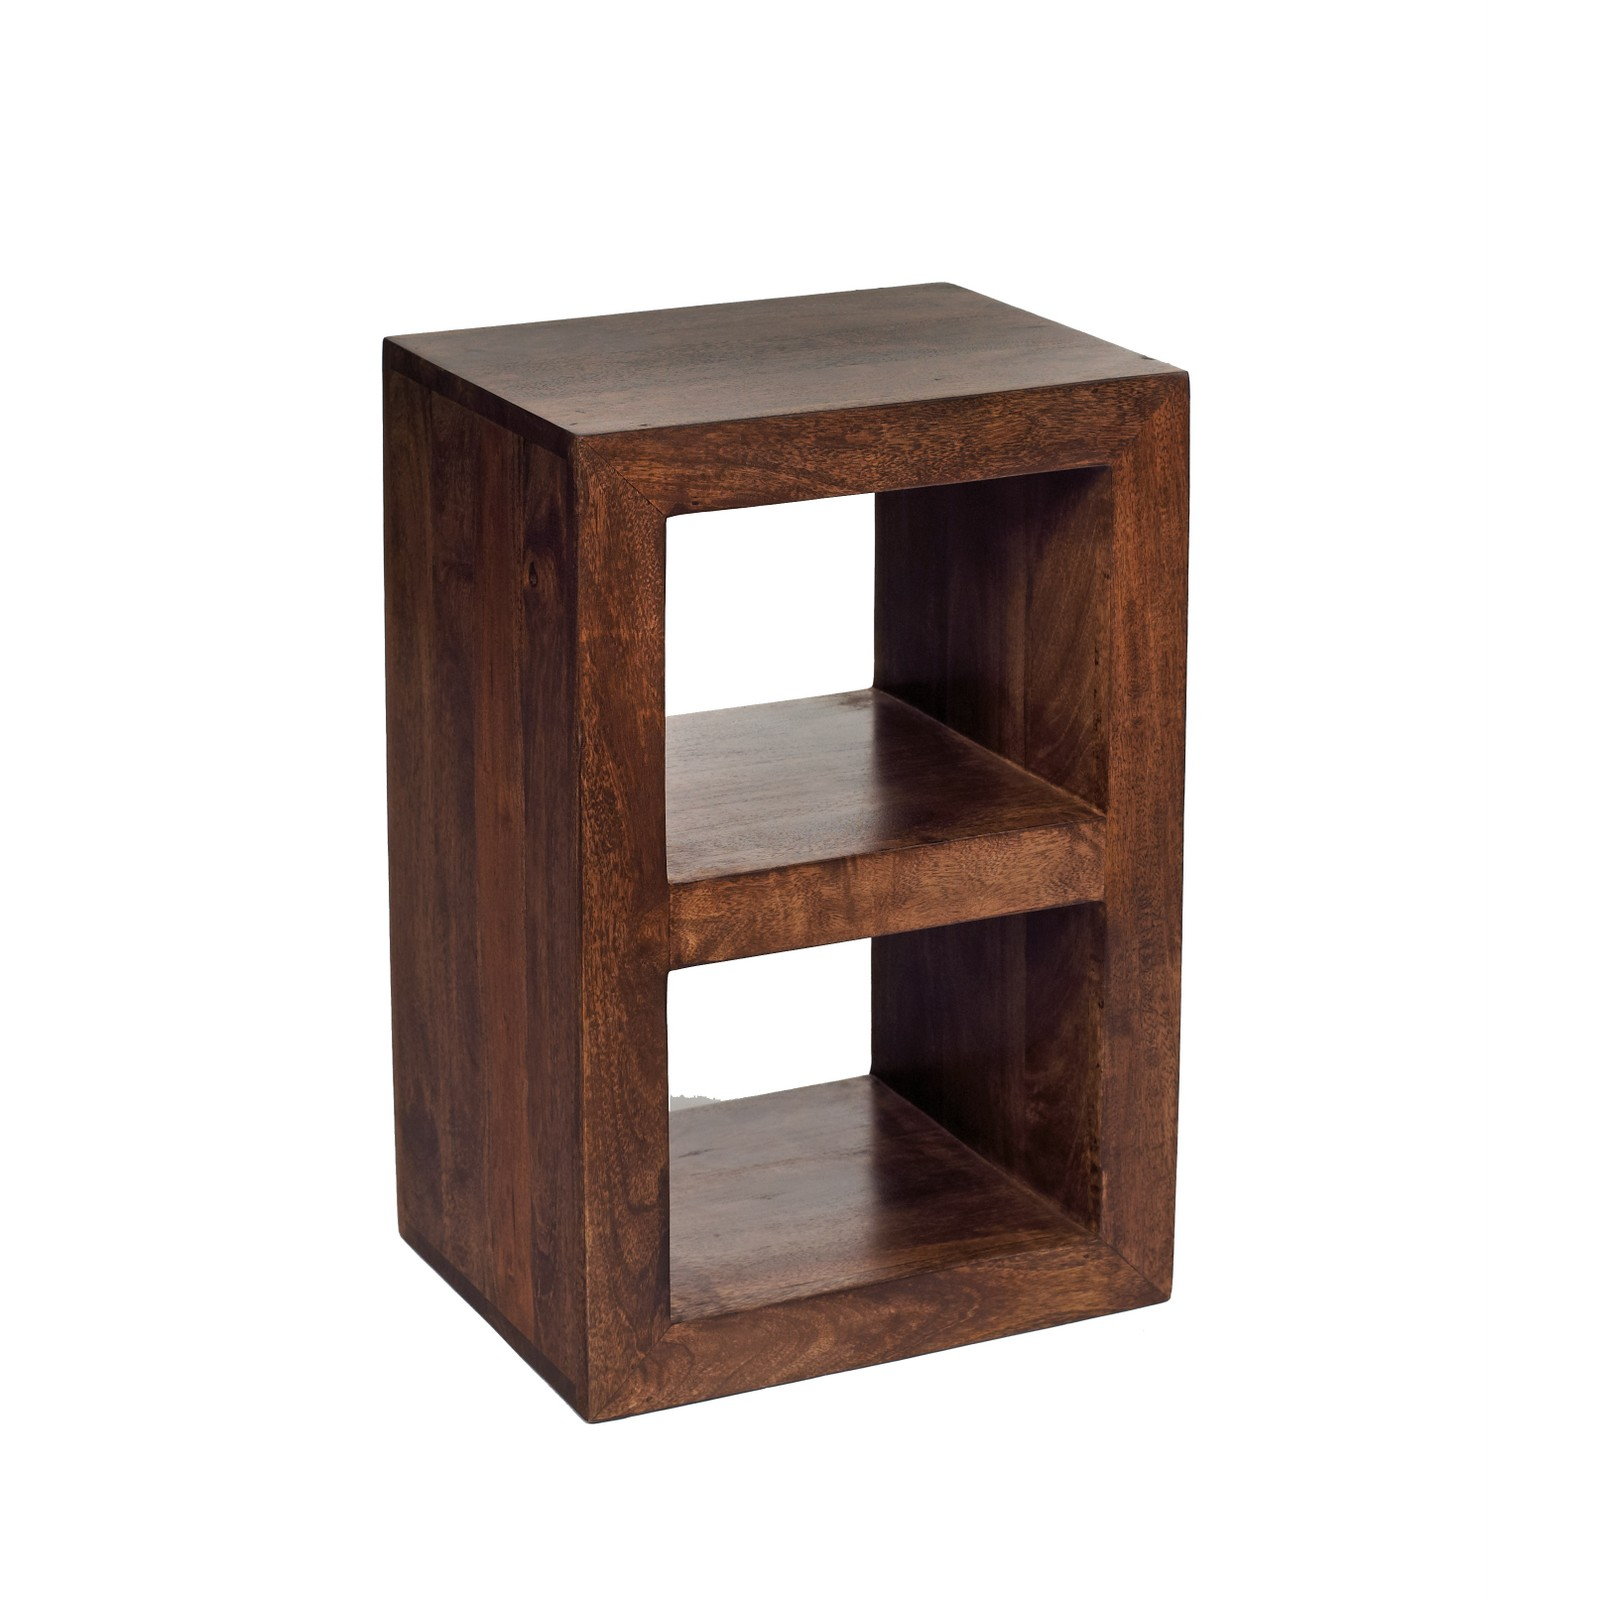 wooden cubes furniture. Dakota Mango 2 Hole Cube Wooden Cubes Furniture N